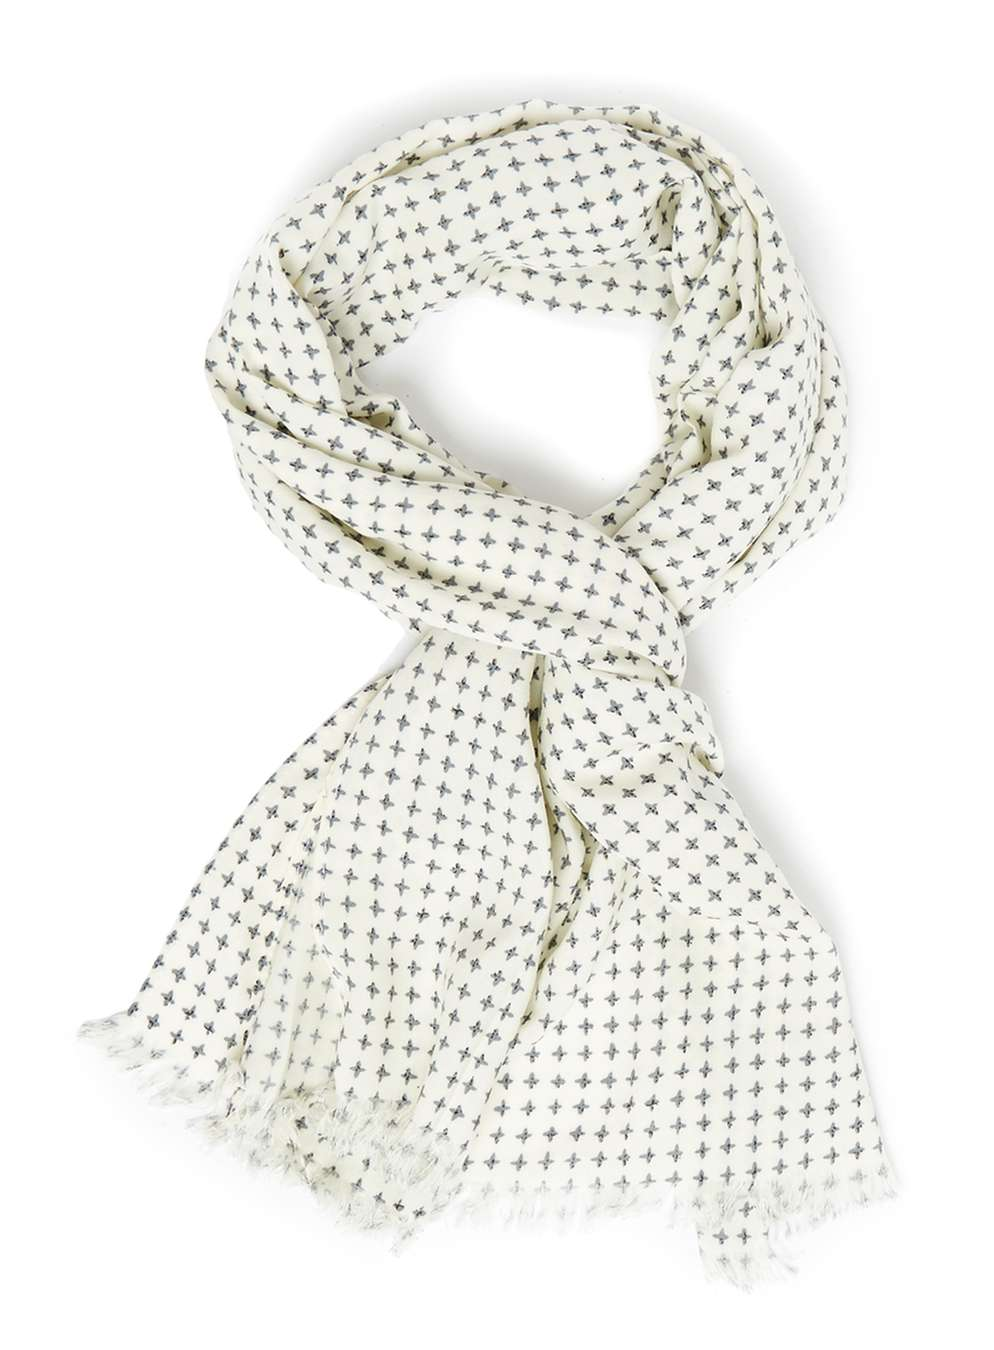 Topman White Printed Dress Scarf